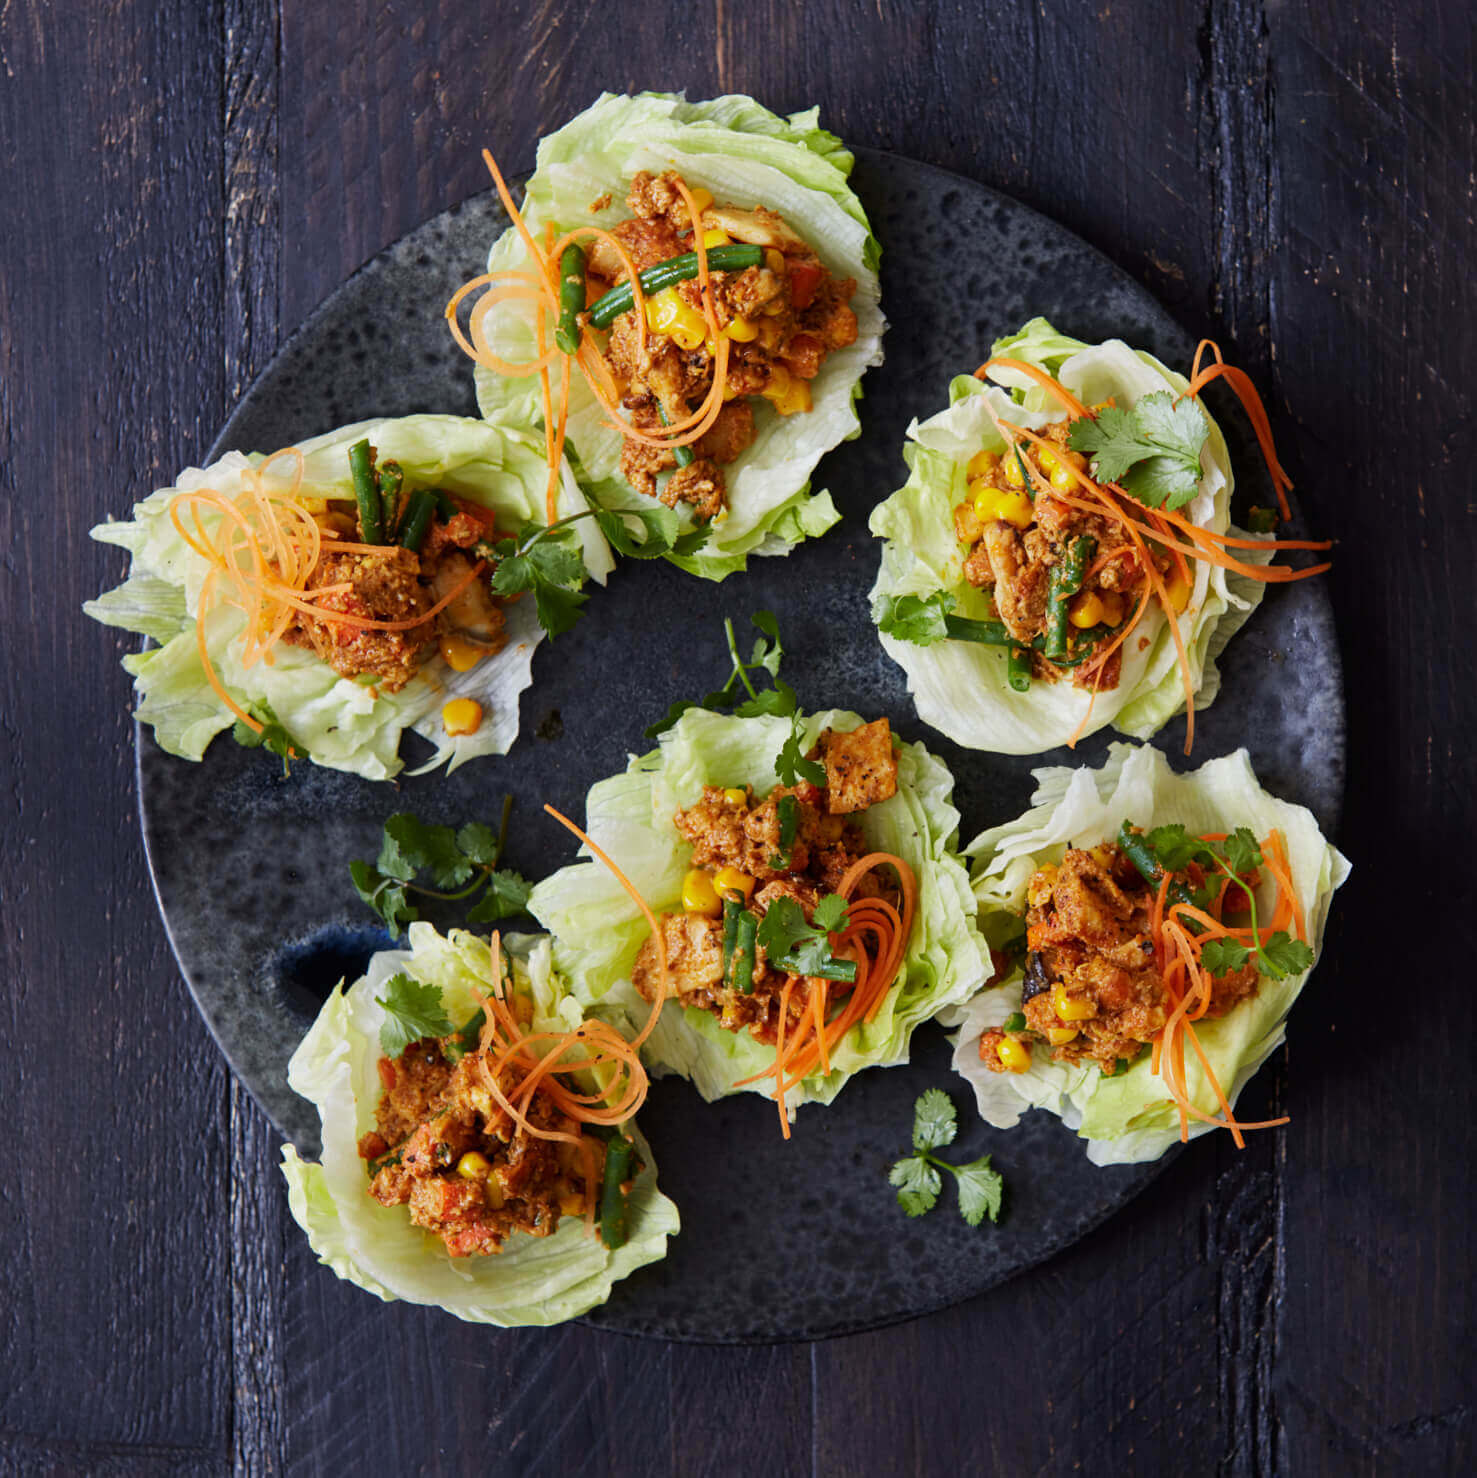 Crunchy Rendang Vegetable Lettuce Wraps